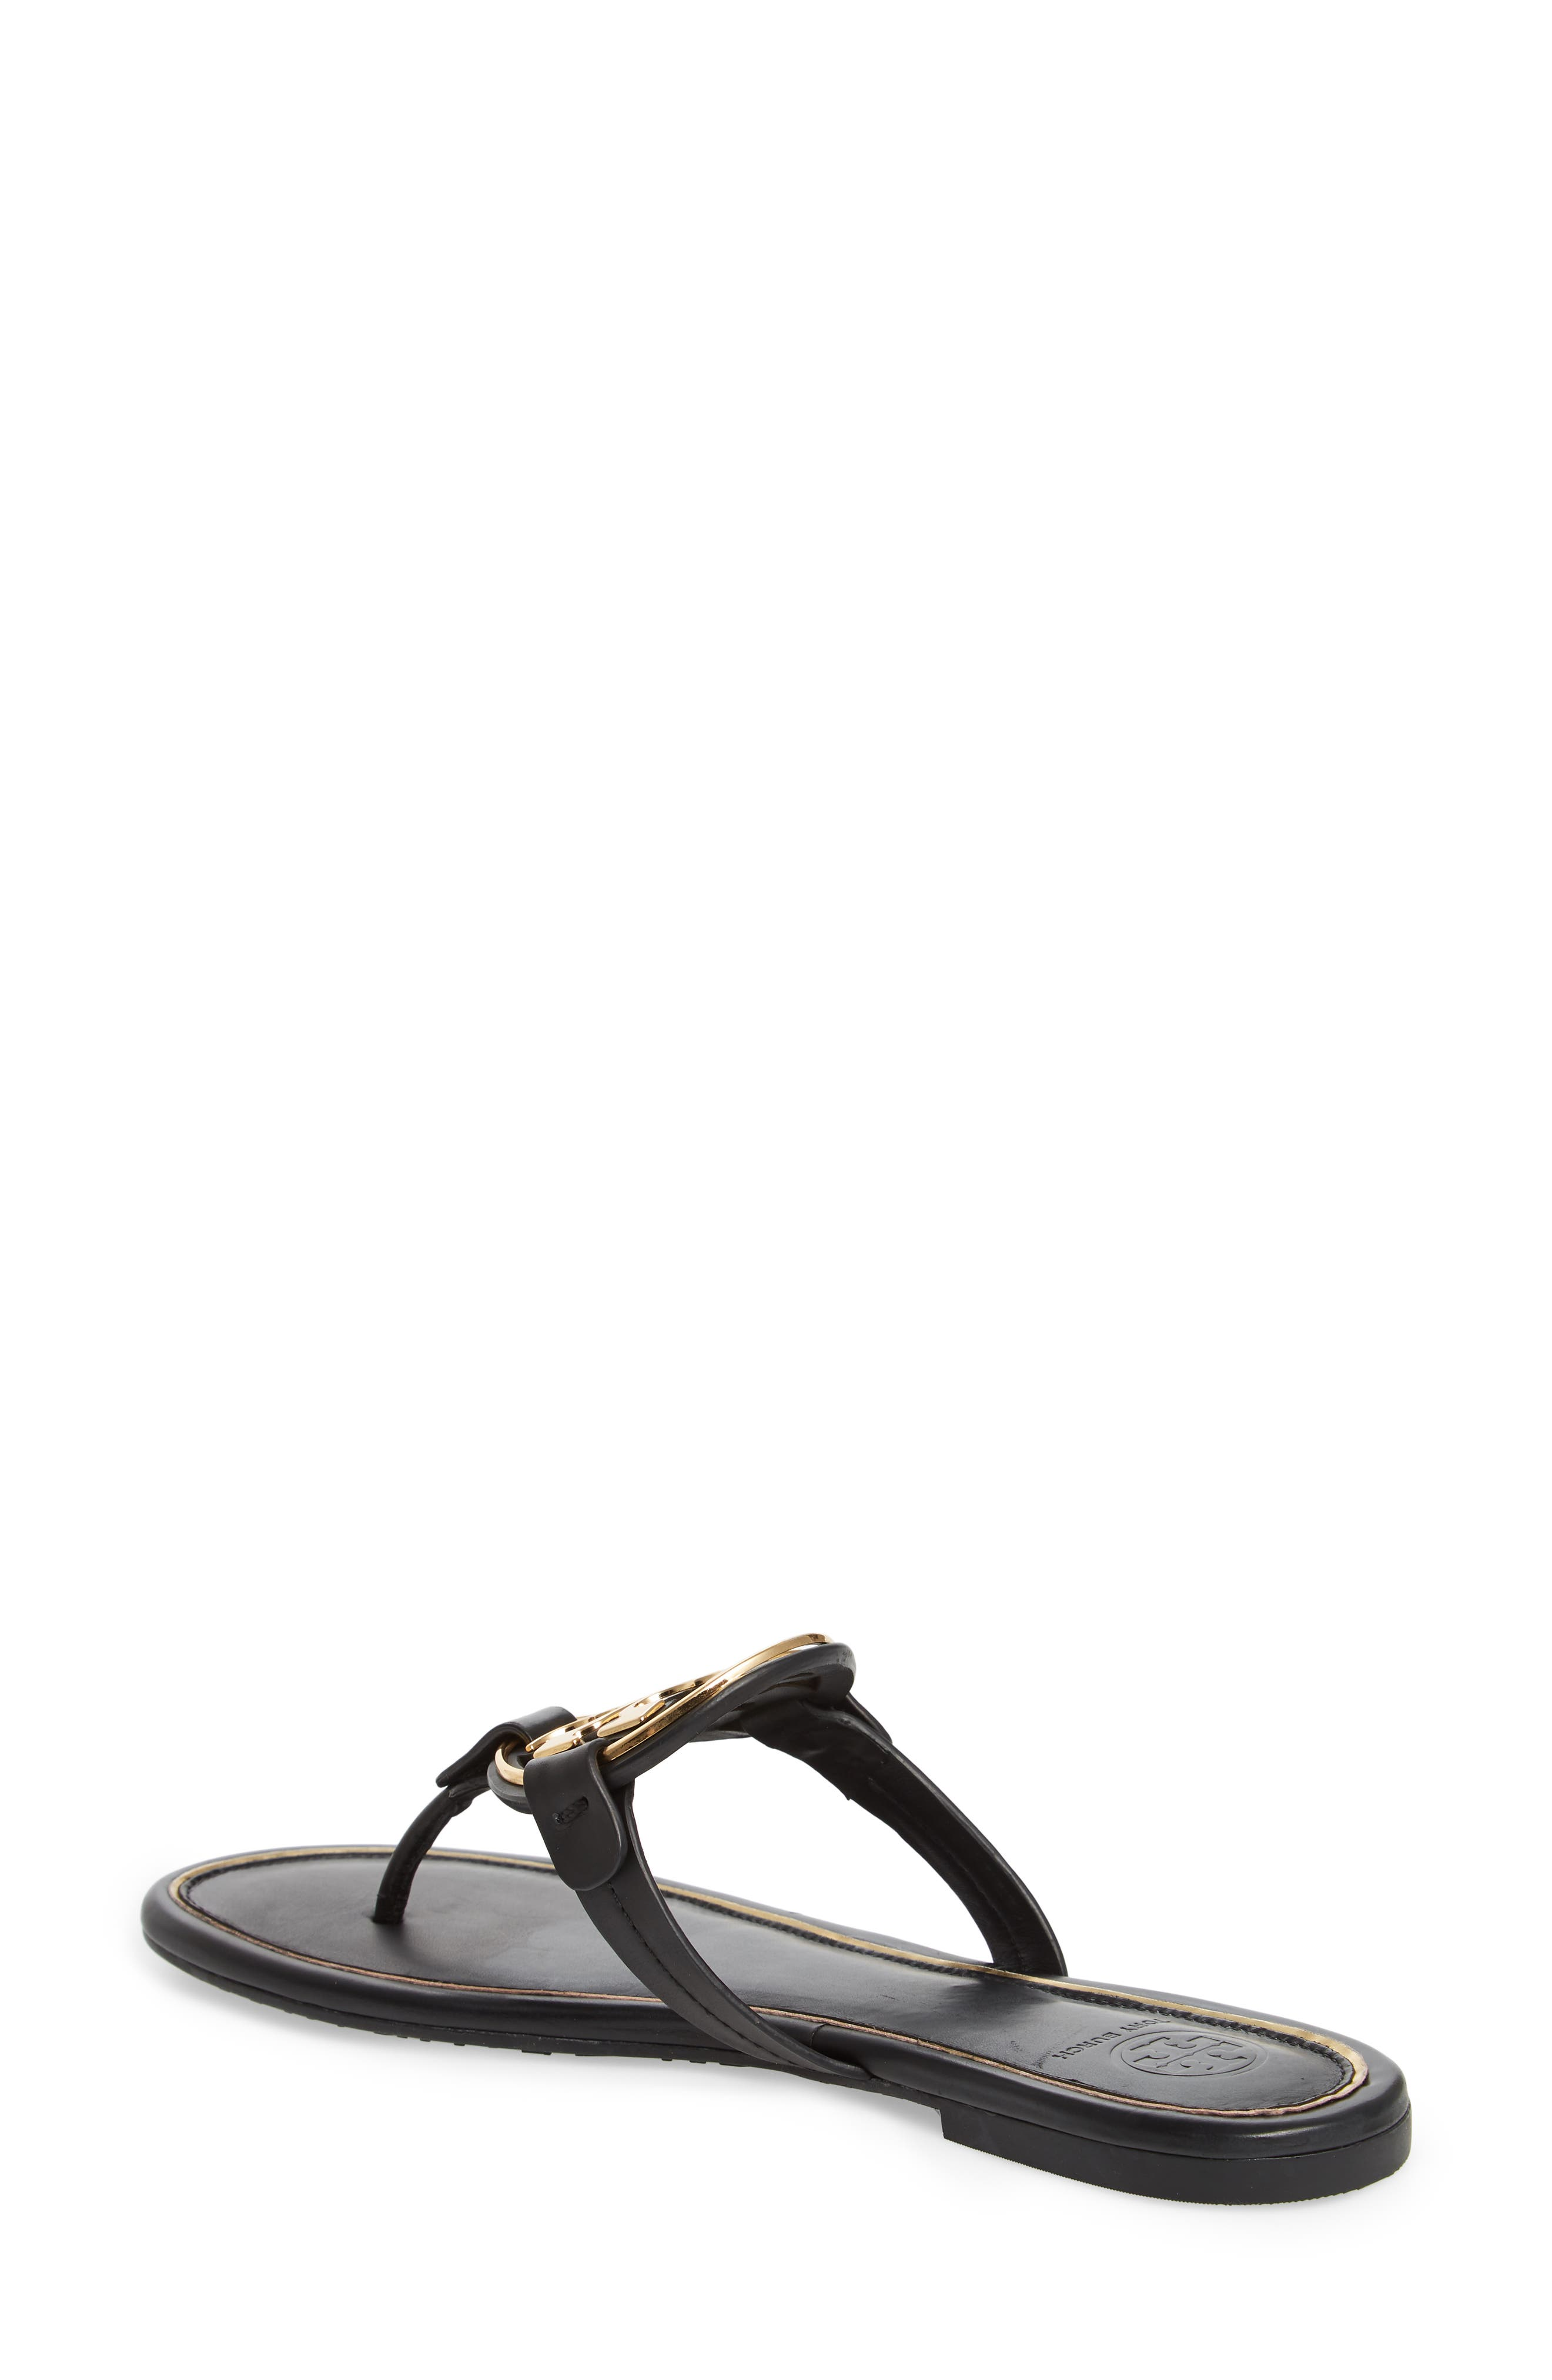 TORY BURCH,                             Metal Miller Flip Flop,                             Alternate thumbnail 2, color,                             PERFECT BLACK/ GOLD